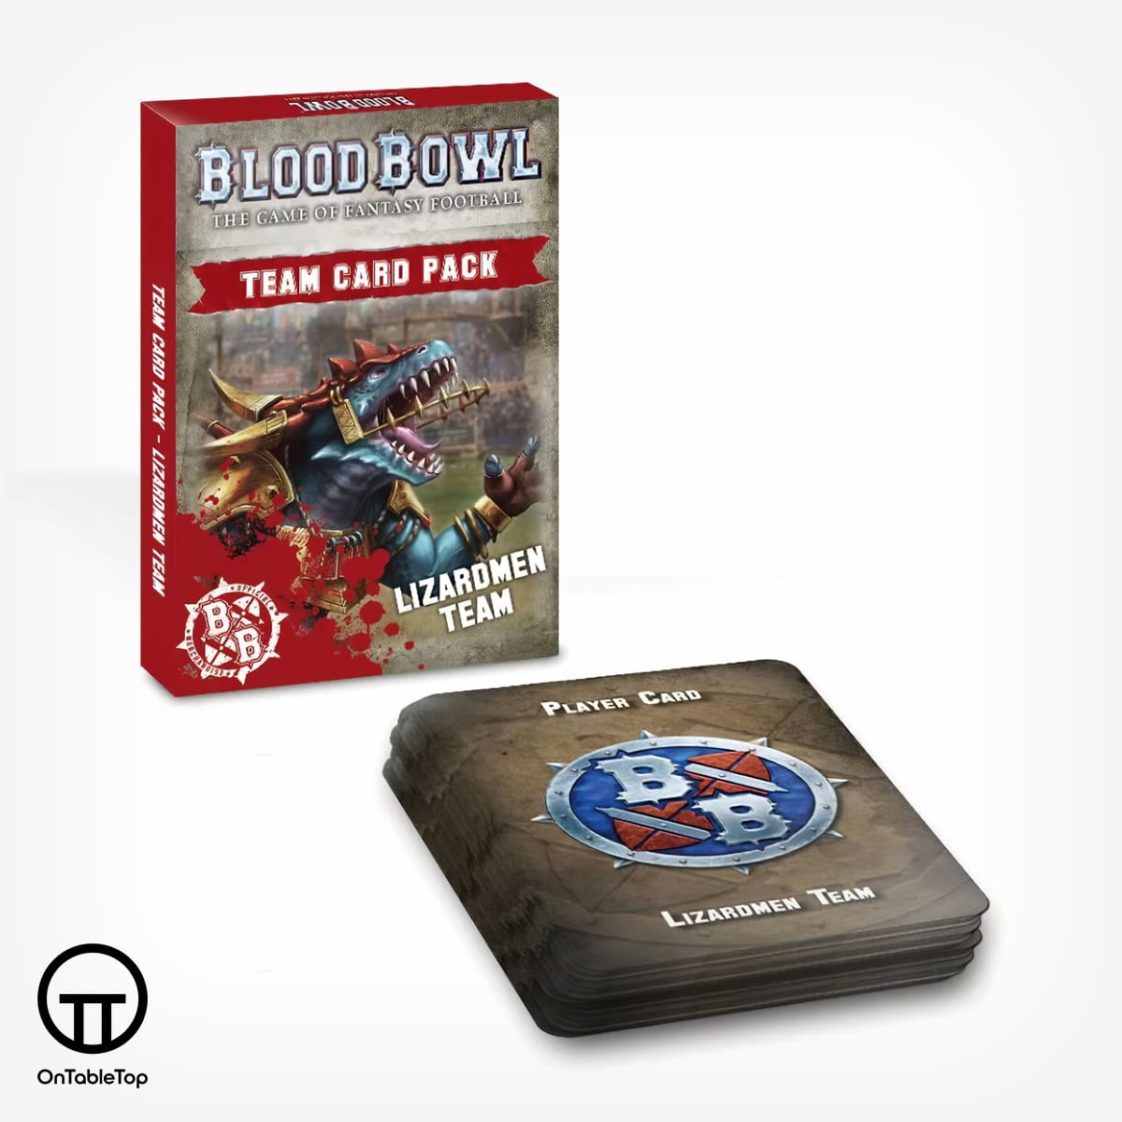 OTT-Blood-Bowl-Lizardmen-Team-Card-Pack-60220908001